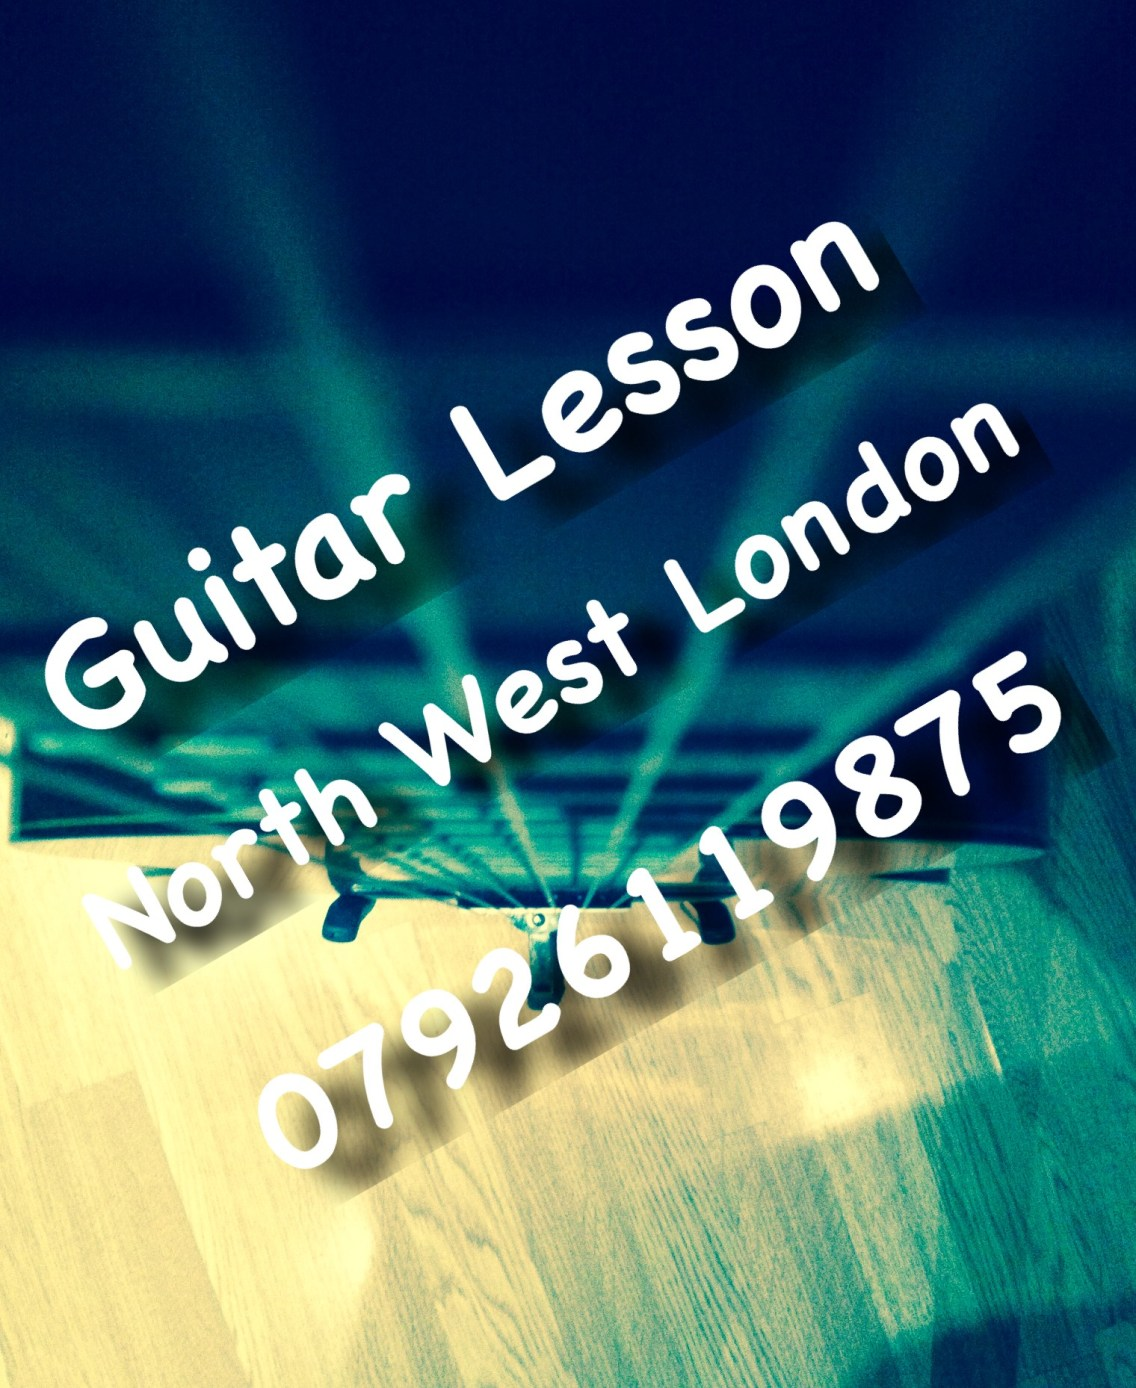 Guitar Lesson North West London with Marco Cirillo Pro Guitar Teacher Based in London. Electric, Acoustic and Classical Guitar Lesson. Learn Guitar in London